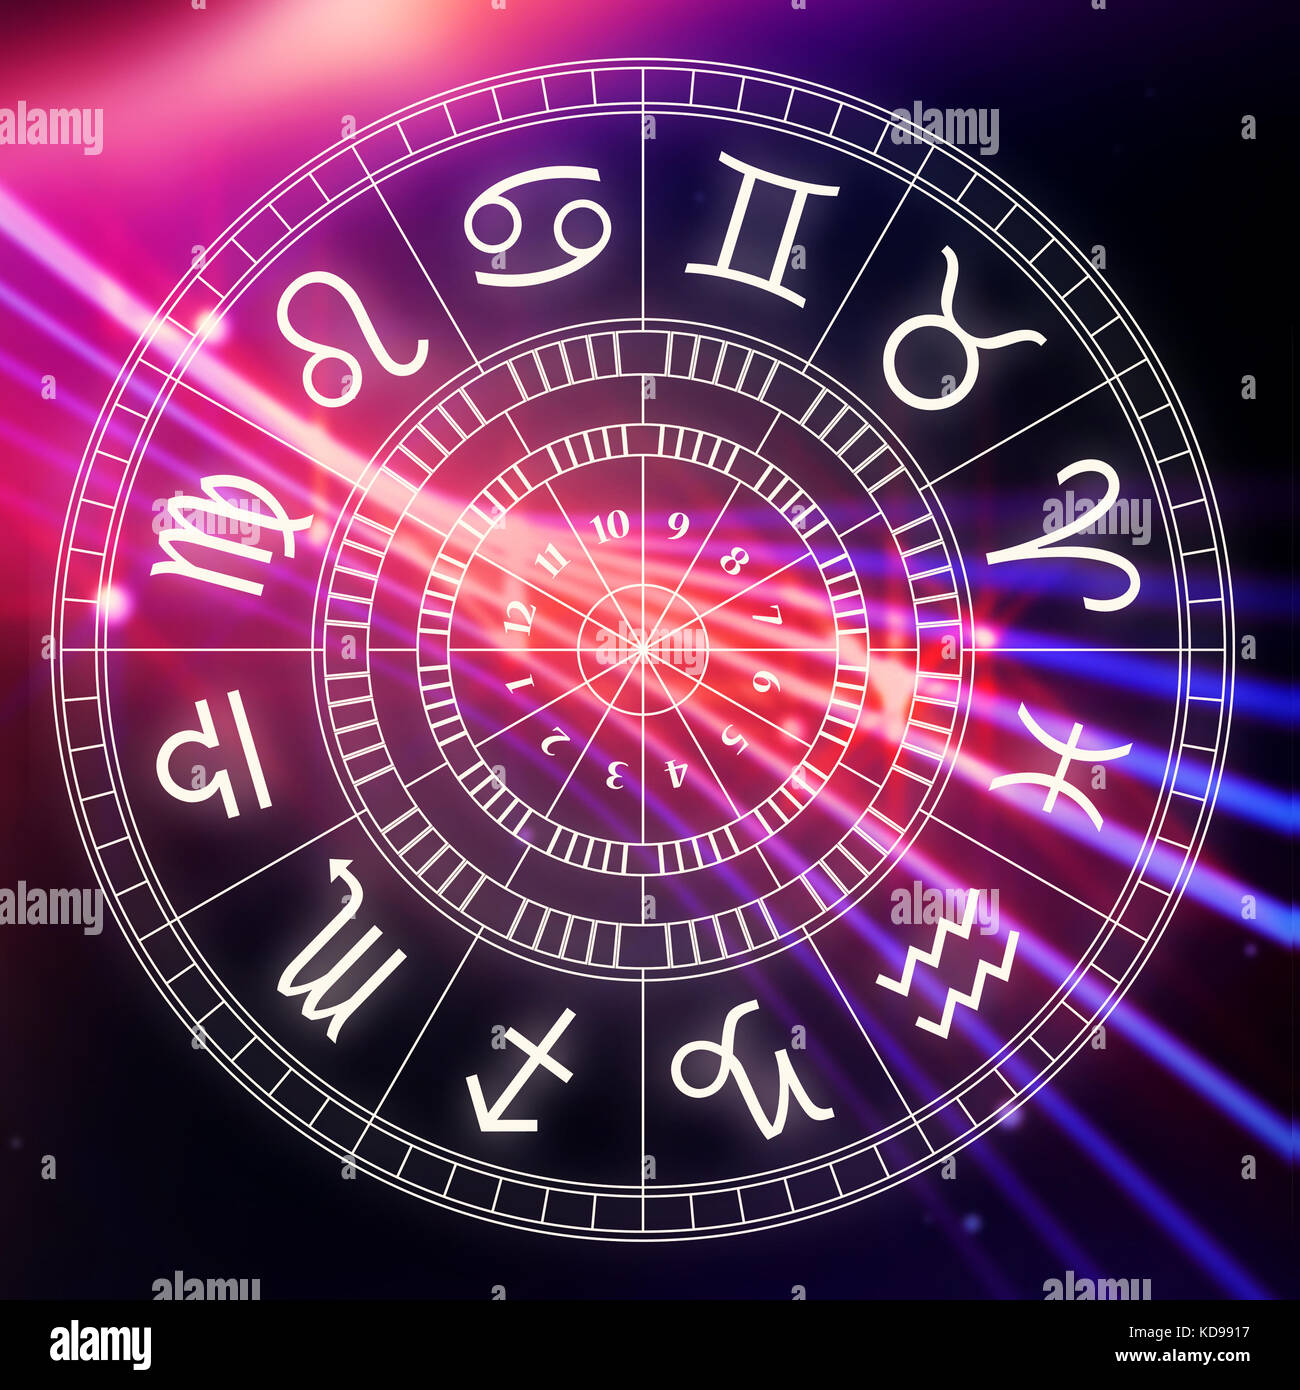 Astrology Signs Stock Photos & Astrology Signs Stock Images - Alamy